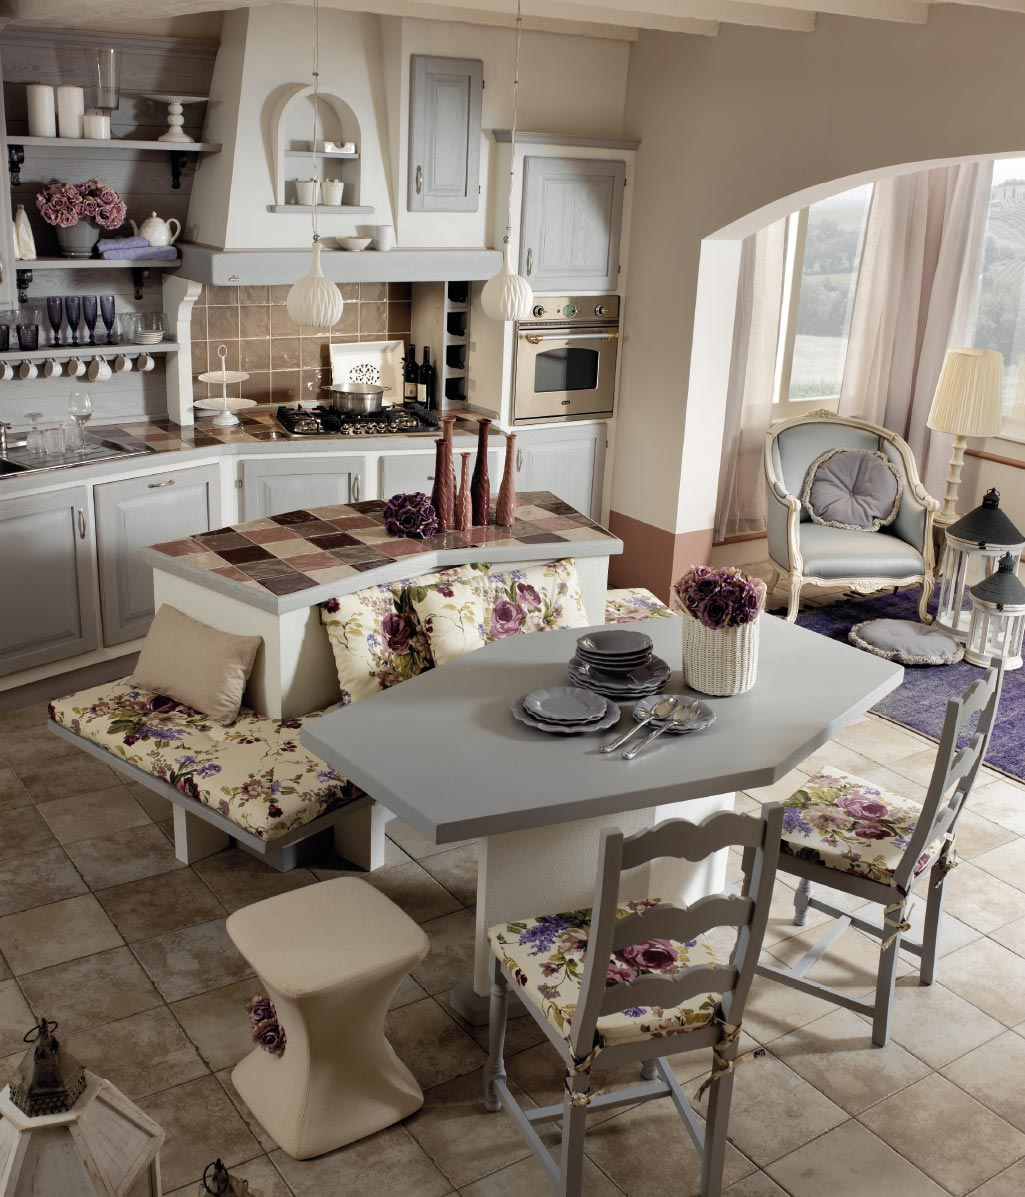 Cucine shabby chic accessori e mobili con foto per for Arredamento country chic ikea